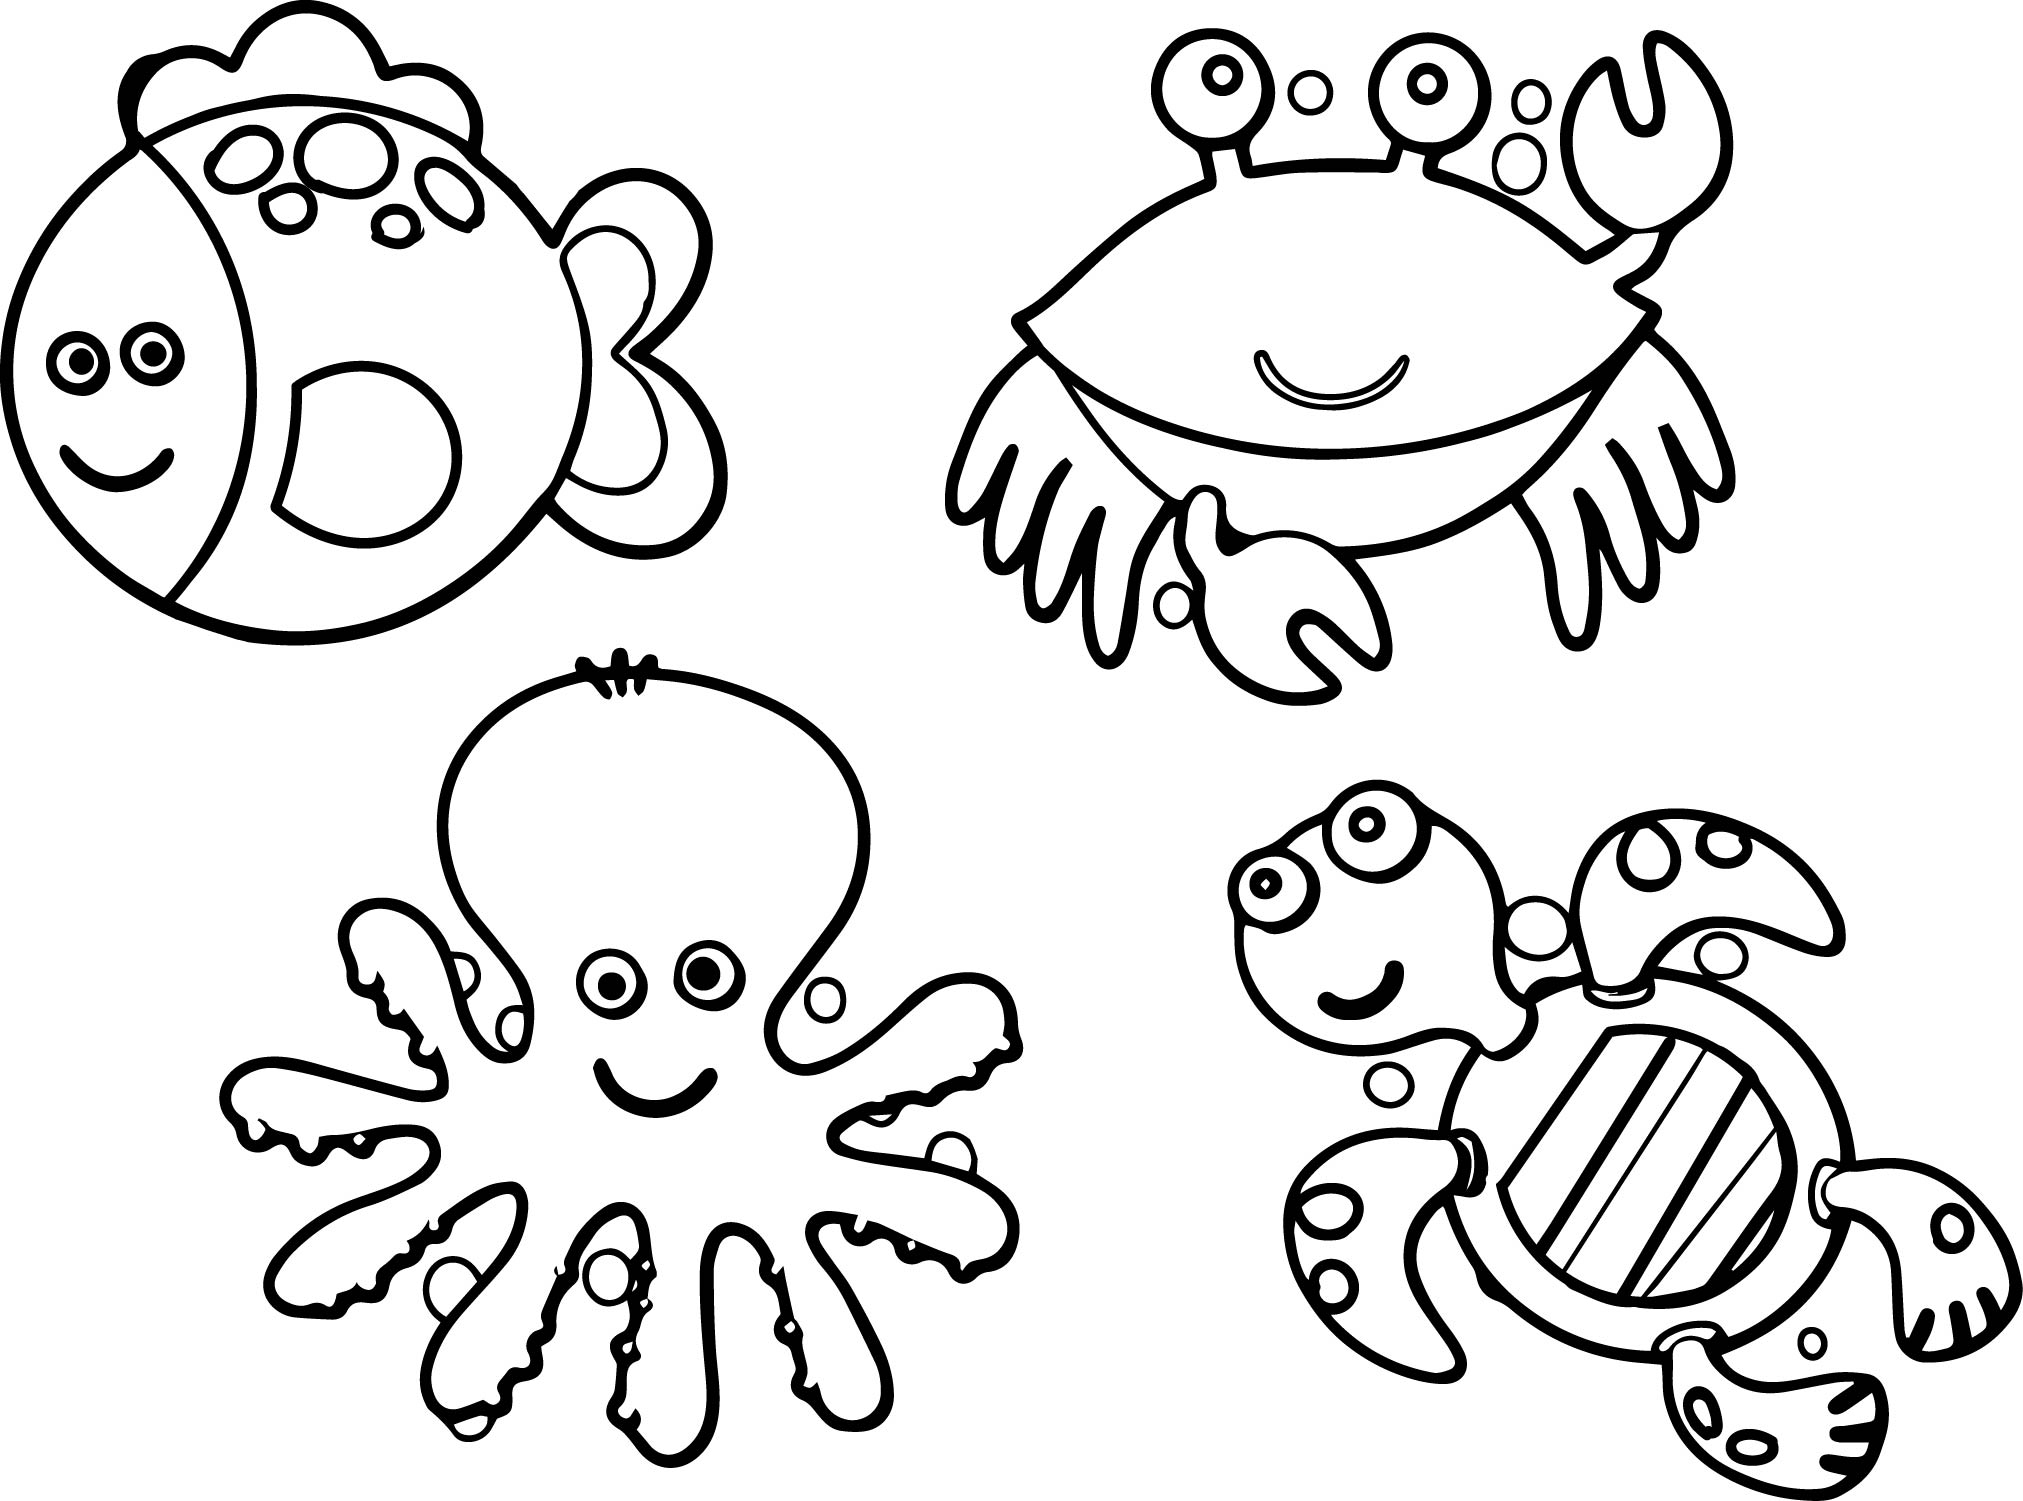 Sea Life Animals Coloring Page | Wecoloringpage.com | coloring pages for sea animals